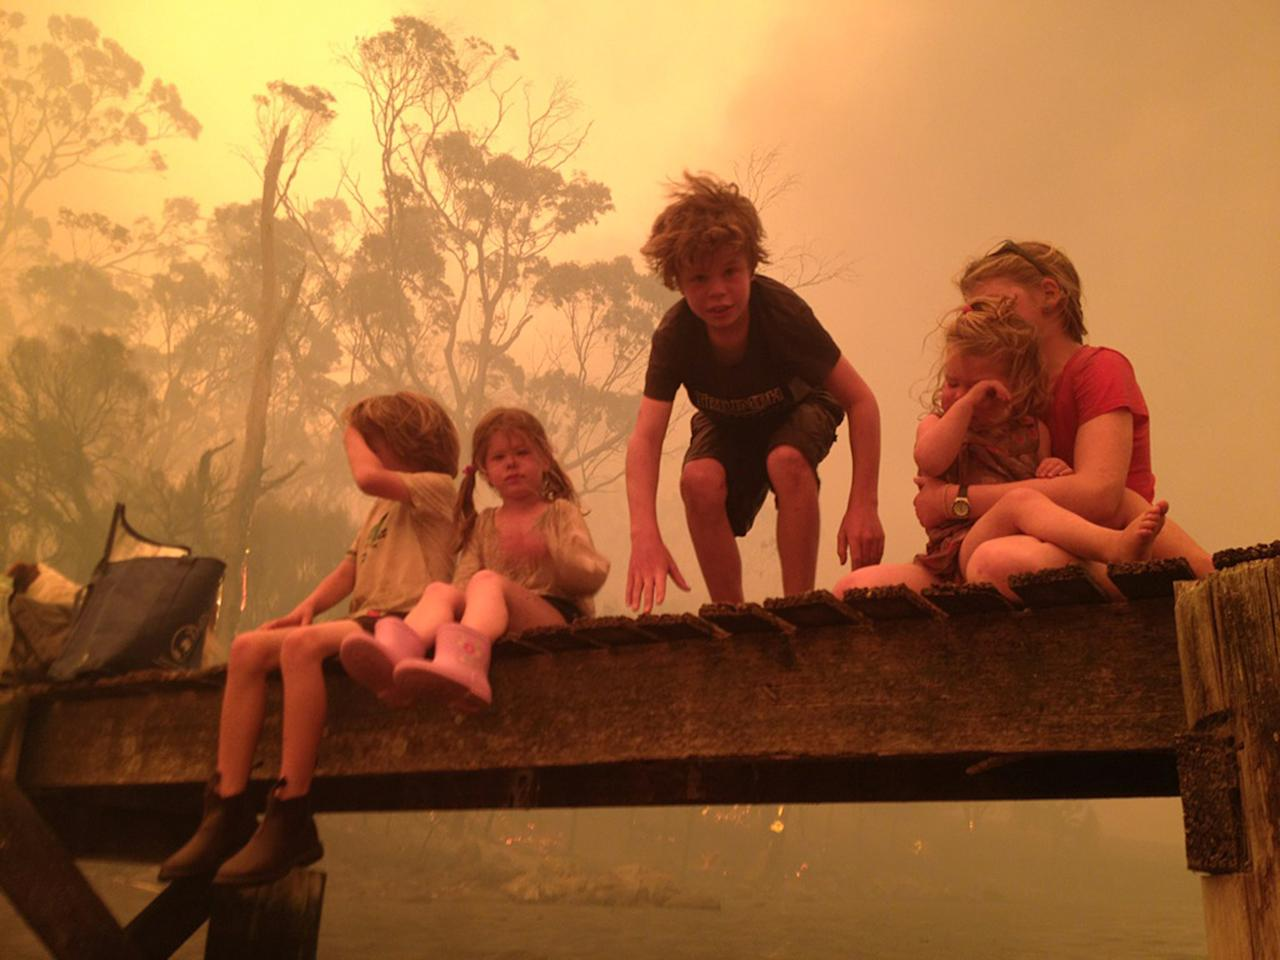 In this Jan. 4, 2013, photo provided by the Holmes family, the Walker siblings six-year-old Caleb, left, four-year-old Esther, second from left, nine-year-old Liam, and eleven-year-old Matilda, right, holding two-year-old Charlotte, prepare to enter the water to take refuge with their grandparents under a jetty as a wildfire rages nearby in the Tasmanian town of Dunalley, east of the state capital of Hobart, Australia. The family credits God with their survival from the fire that destroyed around 90 homes in Dunalley. Record temperatures across southern Australia cooled Wednesday, Jan. 9, 2013, reducing the danger from scores of raging wildfires but likely bringing only a brief reprieve from the summer's extreme heat and fire risk. (AP Photo/The Holms Family, Tim Holmes) EDITORIAL USE ONLY